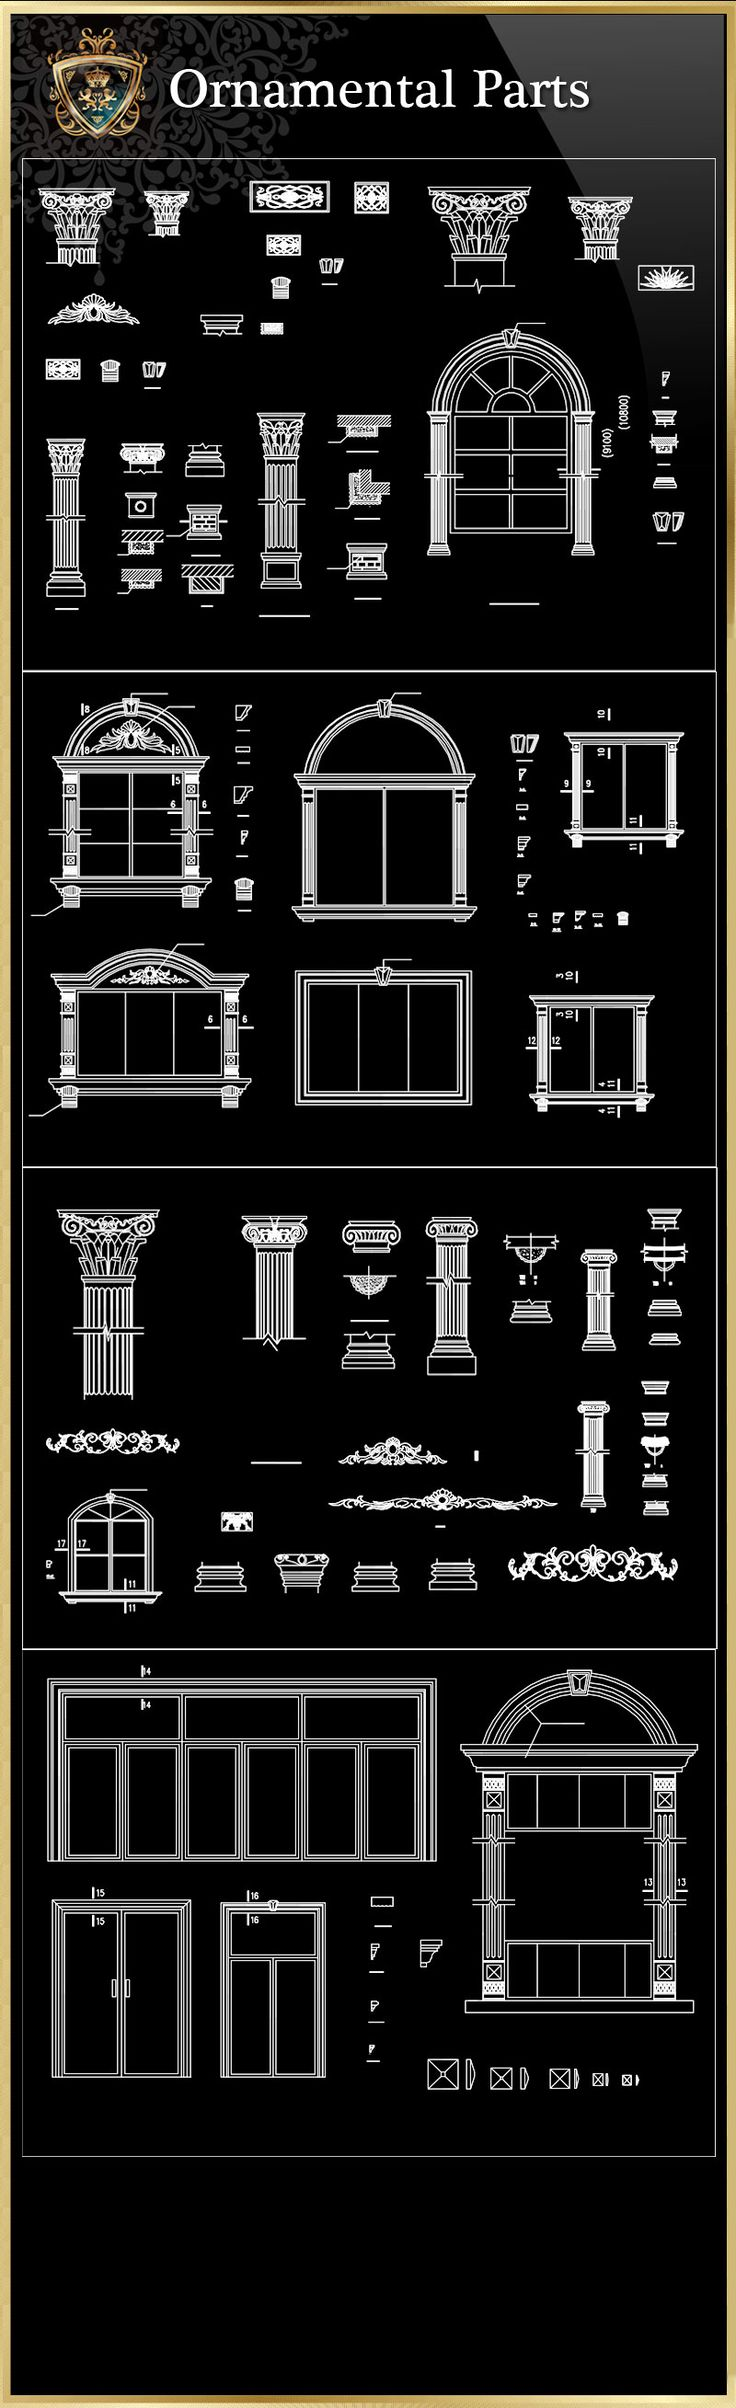 ★【Ornamental Parts of Buildings 8】Download Luxury Architectural Design CAD Drawings--Over 20000+ High quality CAD Blocks and Drawings Download!